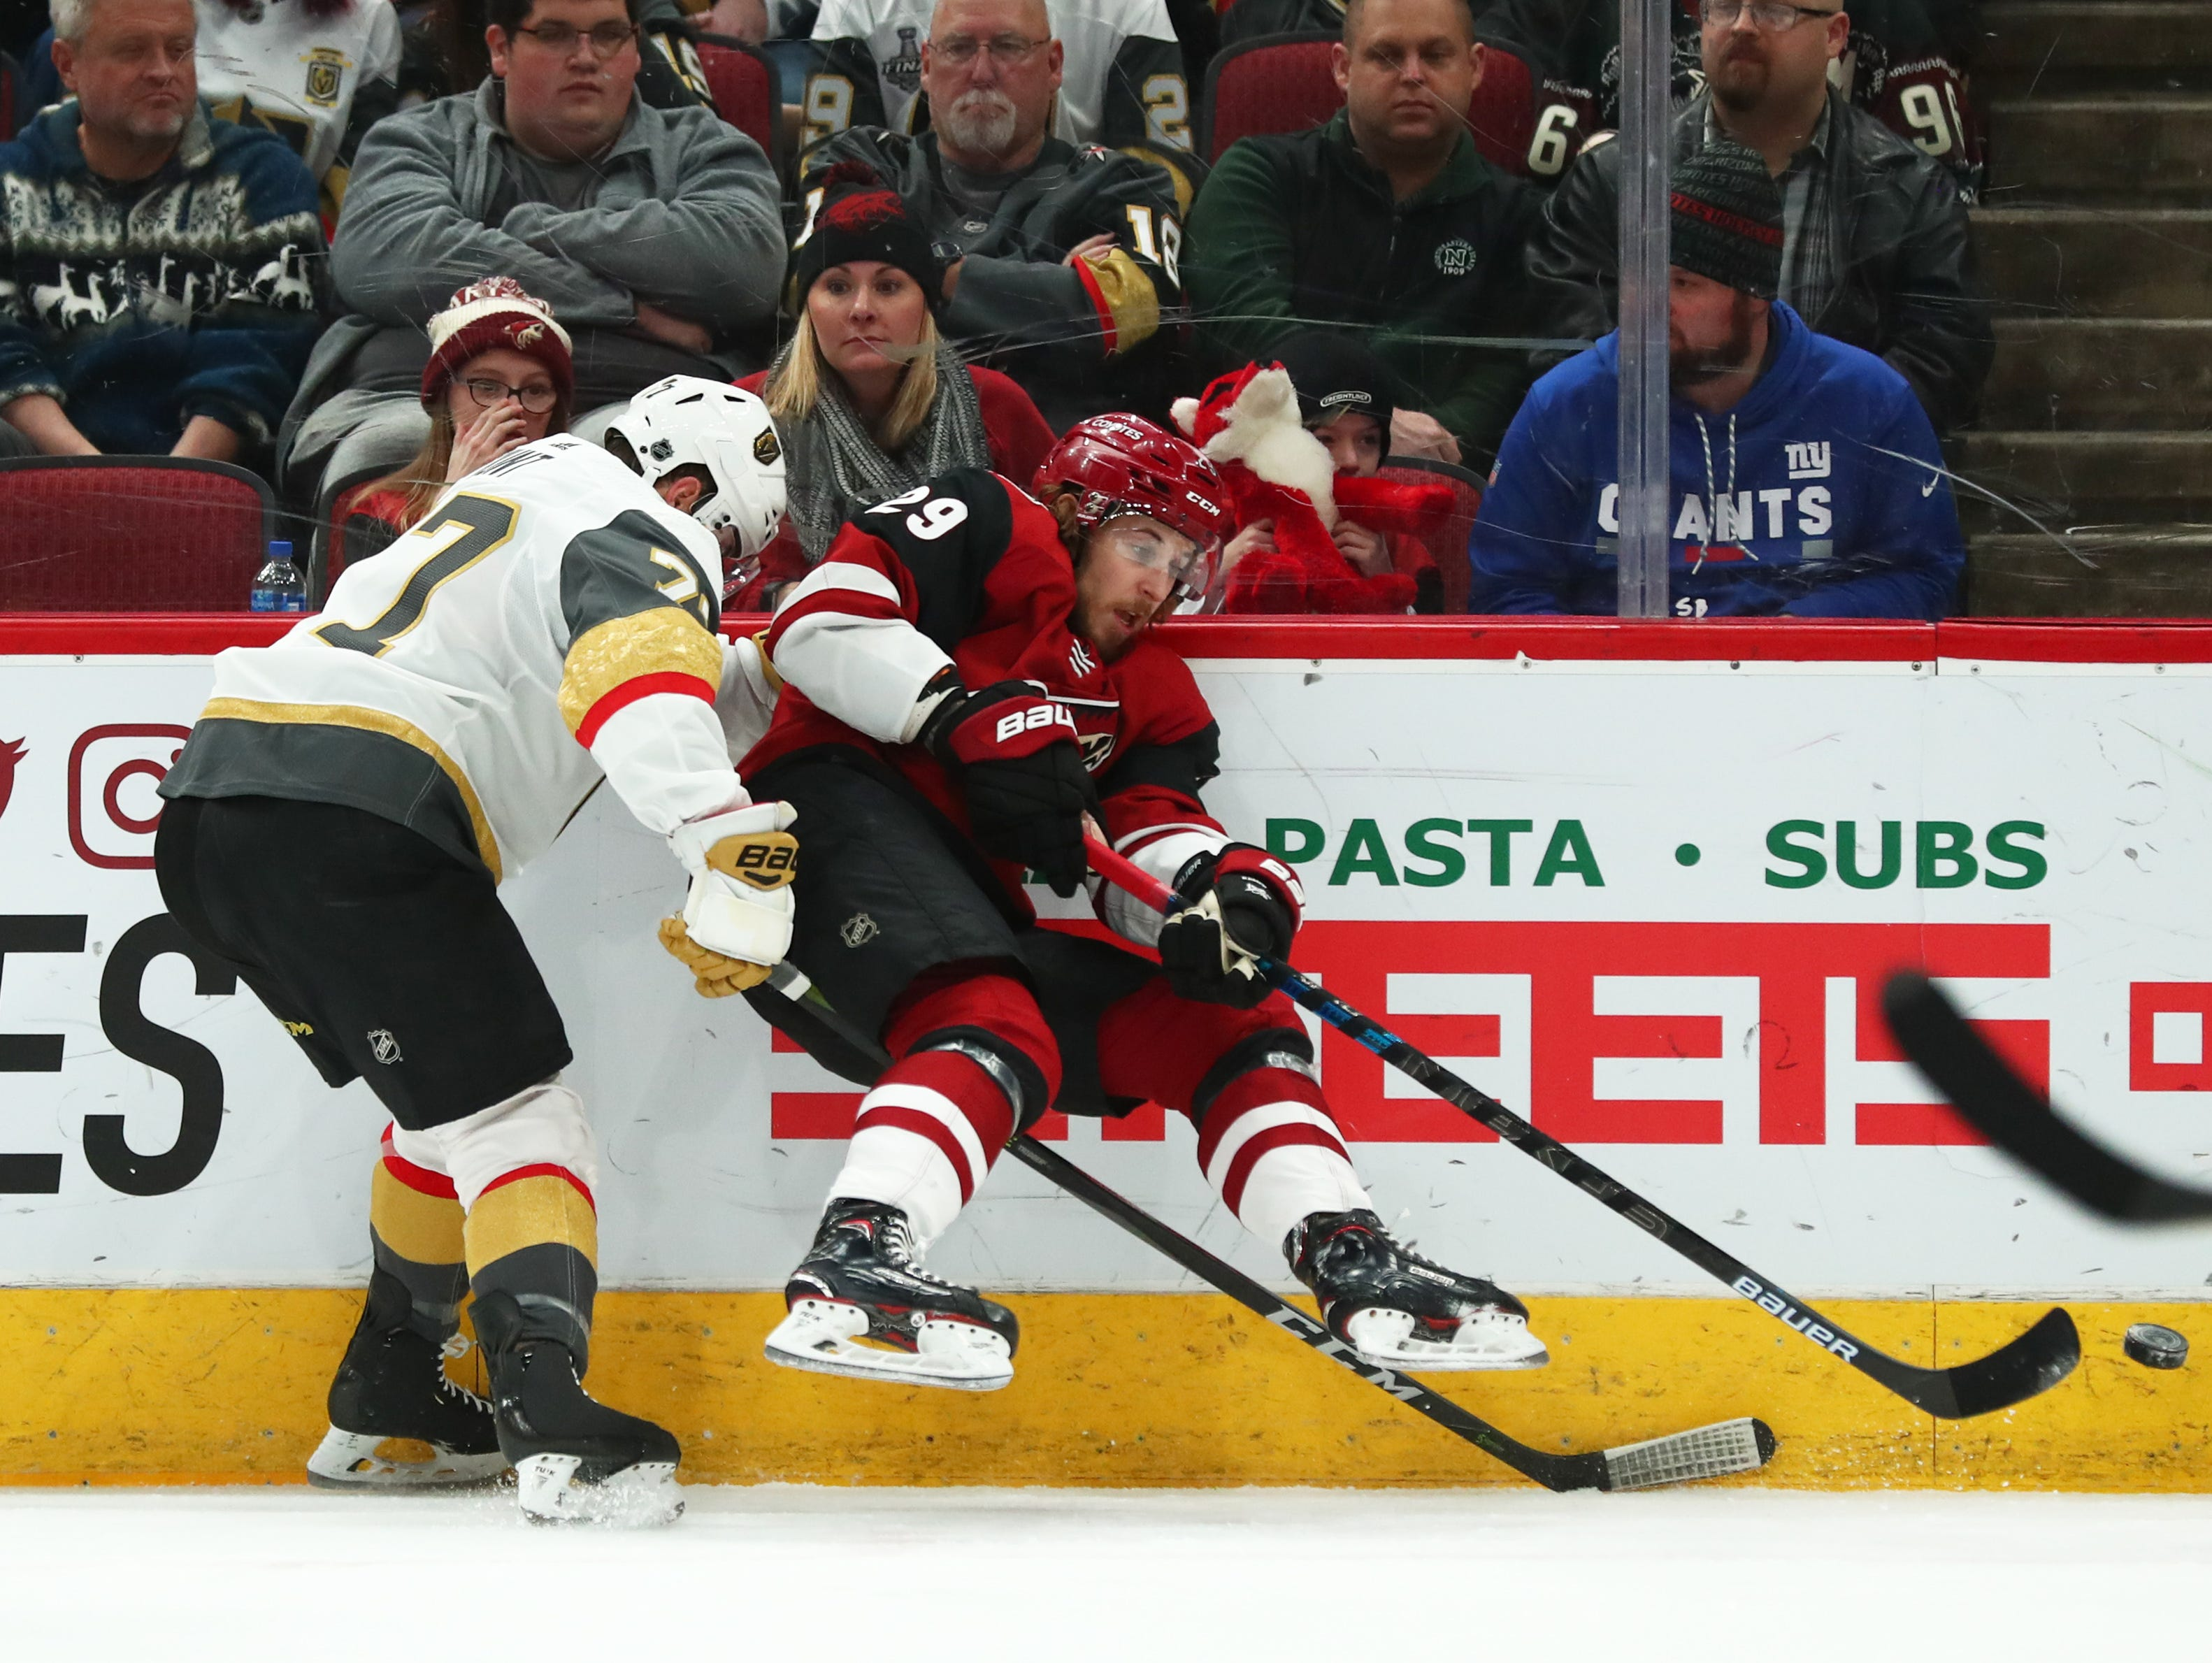 Dec 30, 2018; Glendale, AZ, USA; Arizona Coyotes right wing Mario Kempe (29) moves the puck against Vegas Golden Knights defenseman Brad Hunt (77) in the first period at Gila River Arena. Mandatory Credit: Mark J. Rebilas-USA TODAY Sports